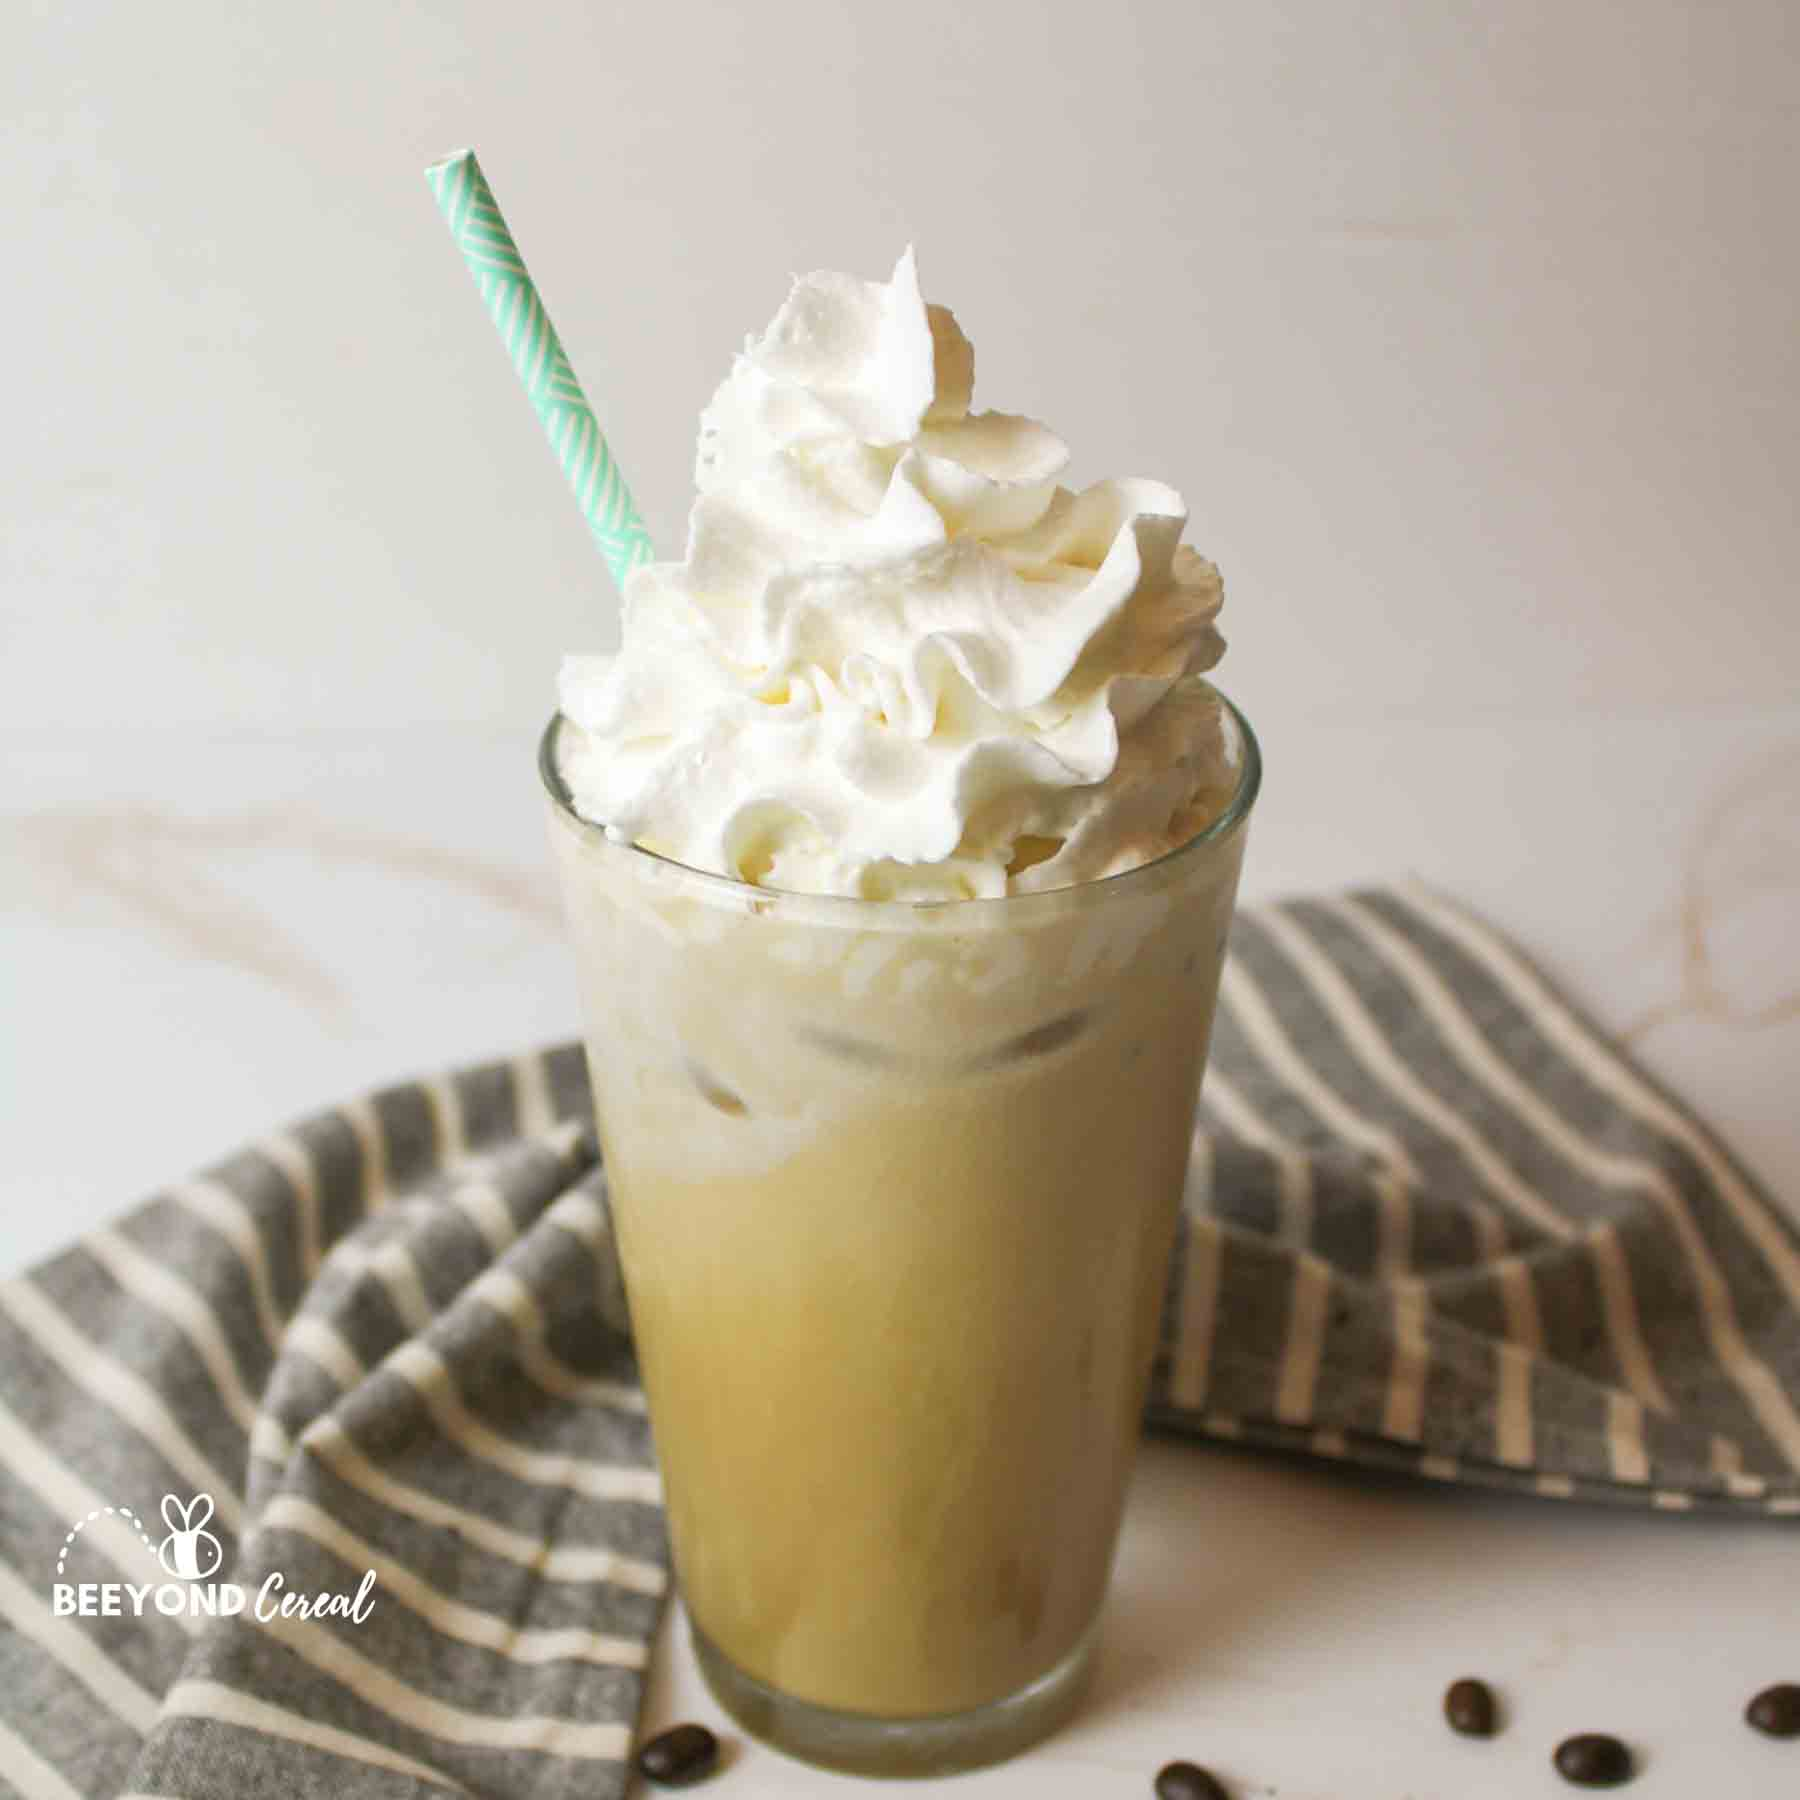 a glass of iced white chocolate mocha with whipped cream and a straw